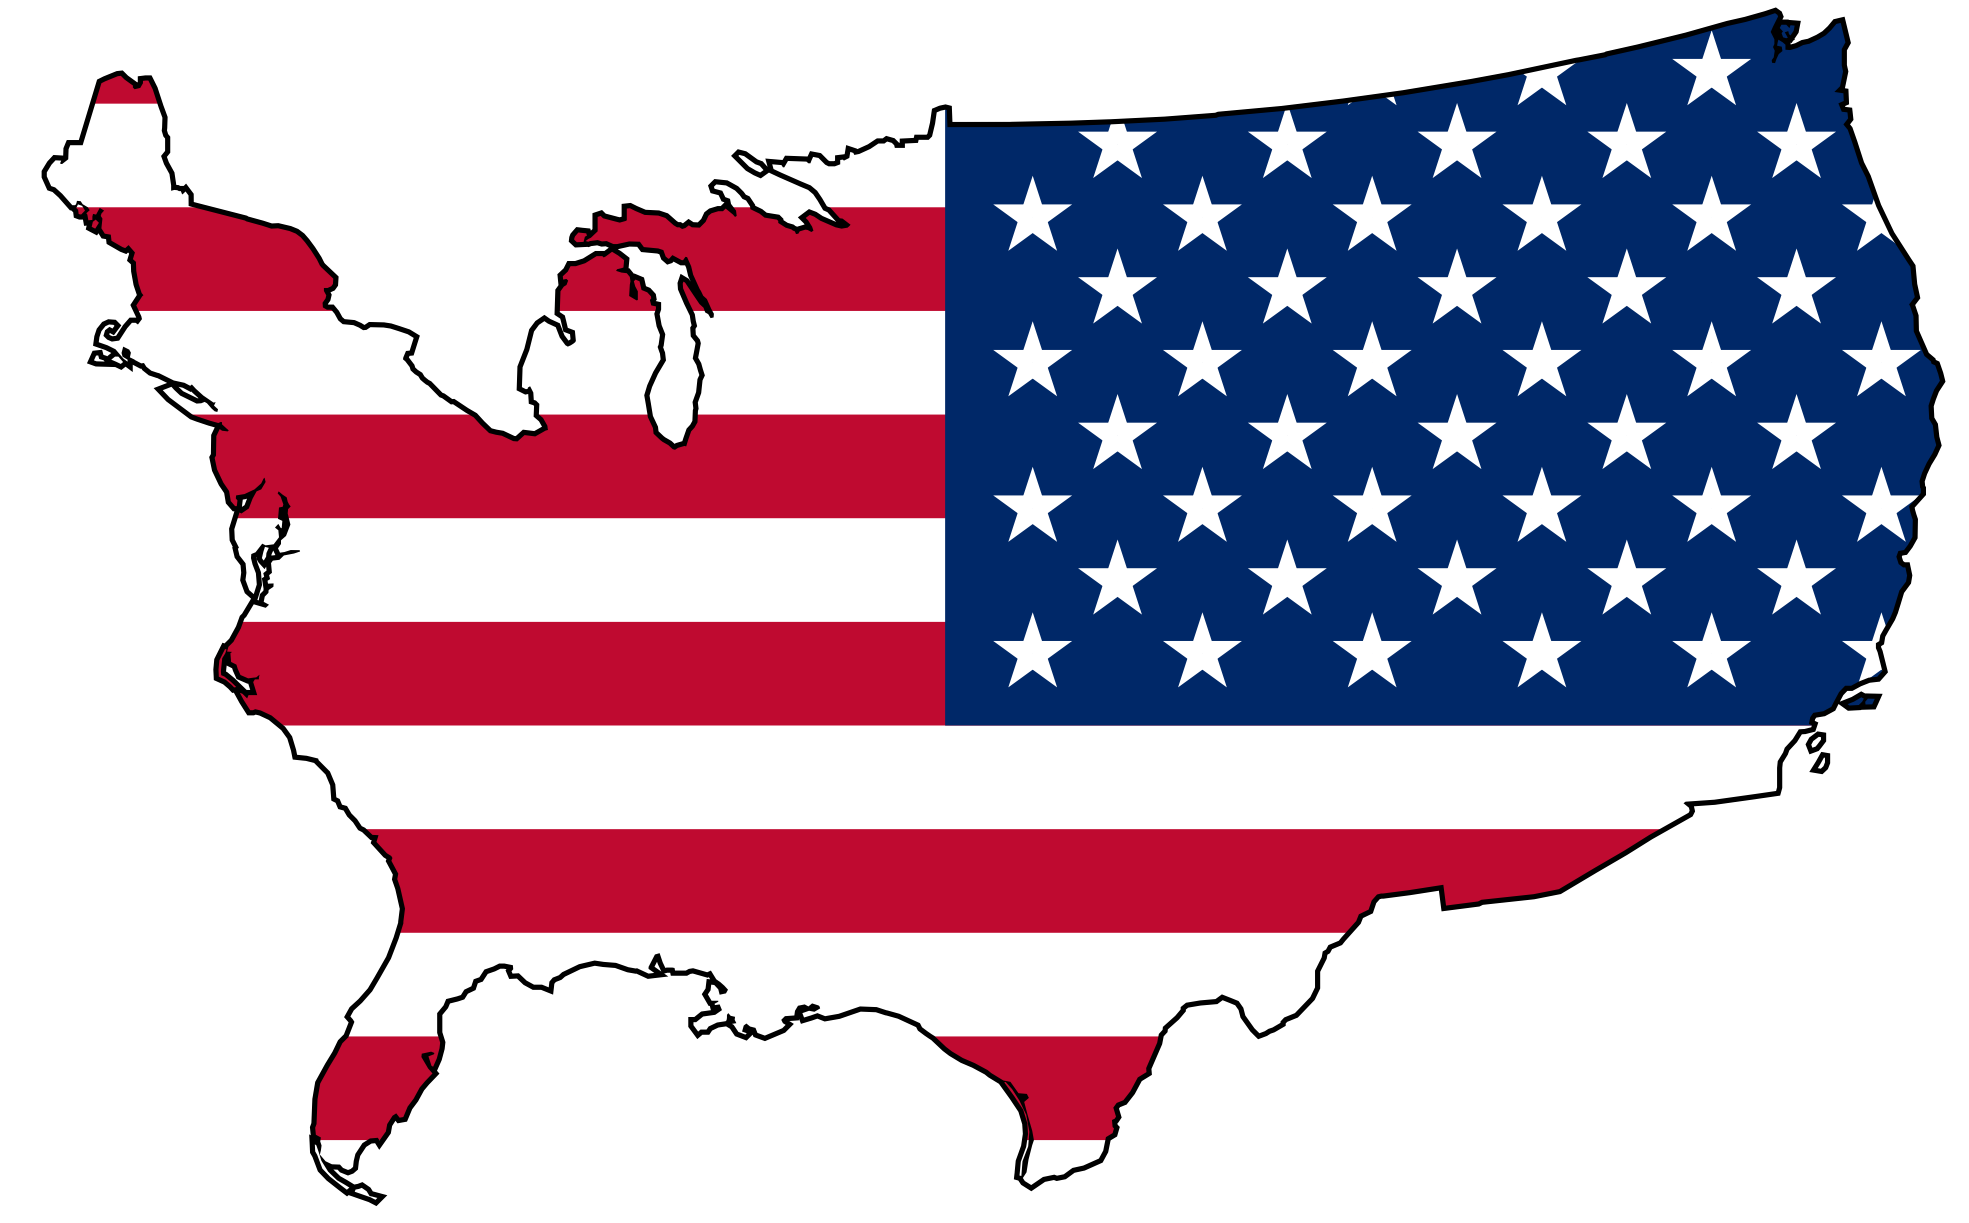 Us map clipart powerpoint image freeuse download 19 Usa clipart HUGE FREEBIE! Download for PowerPoint presentations ... image freeuse download